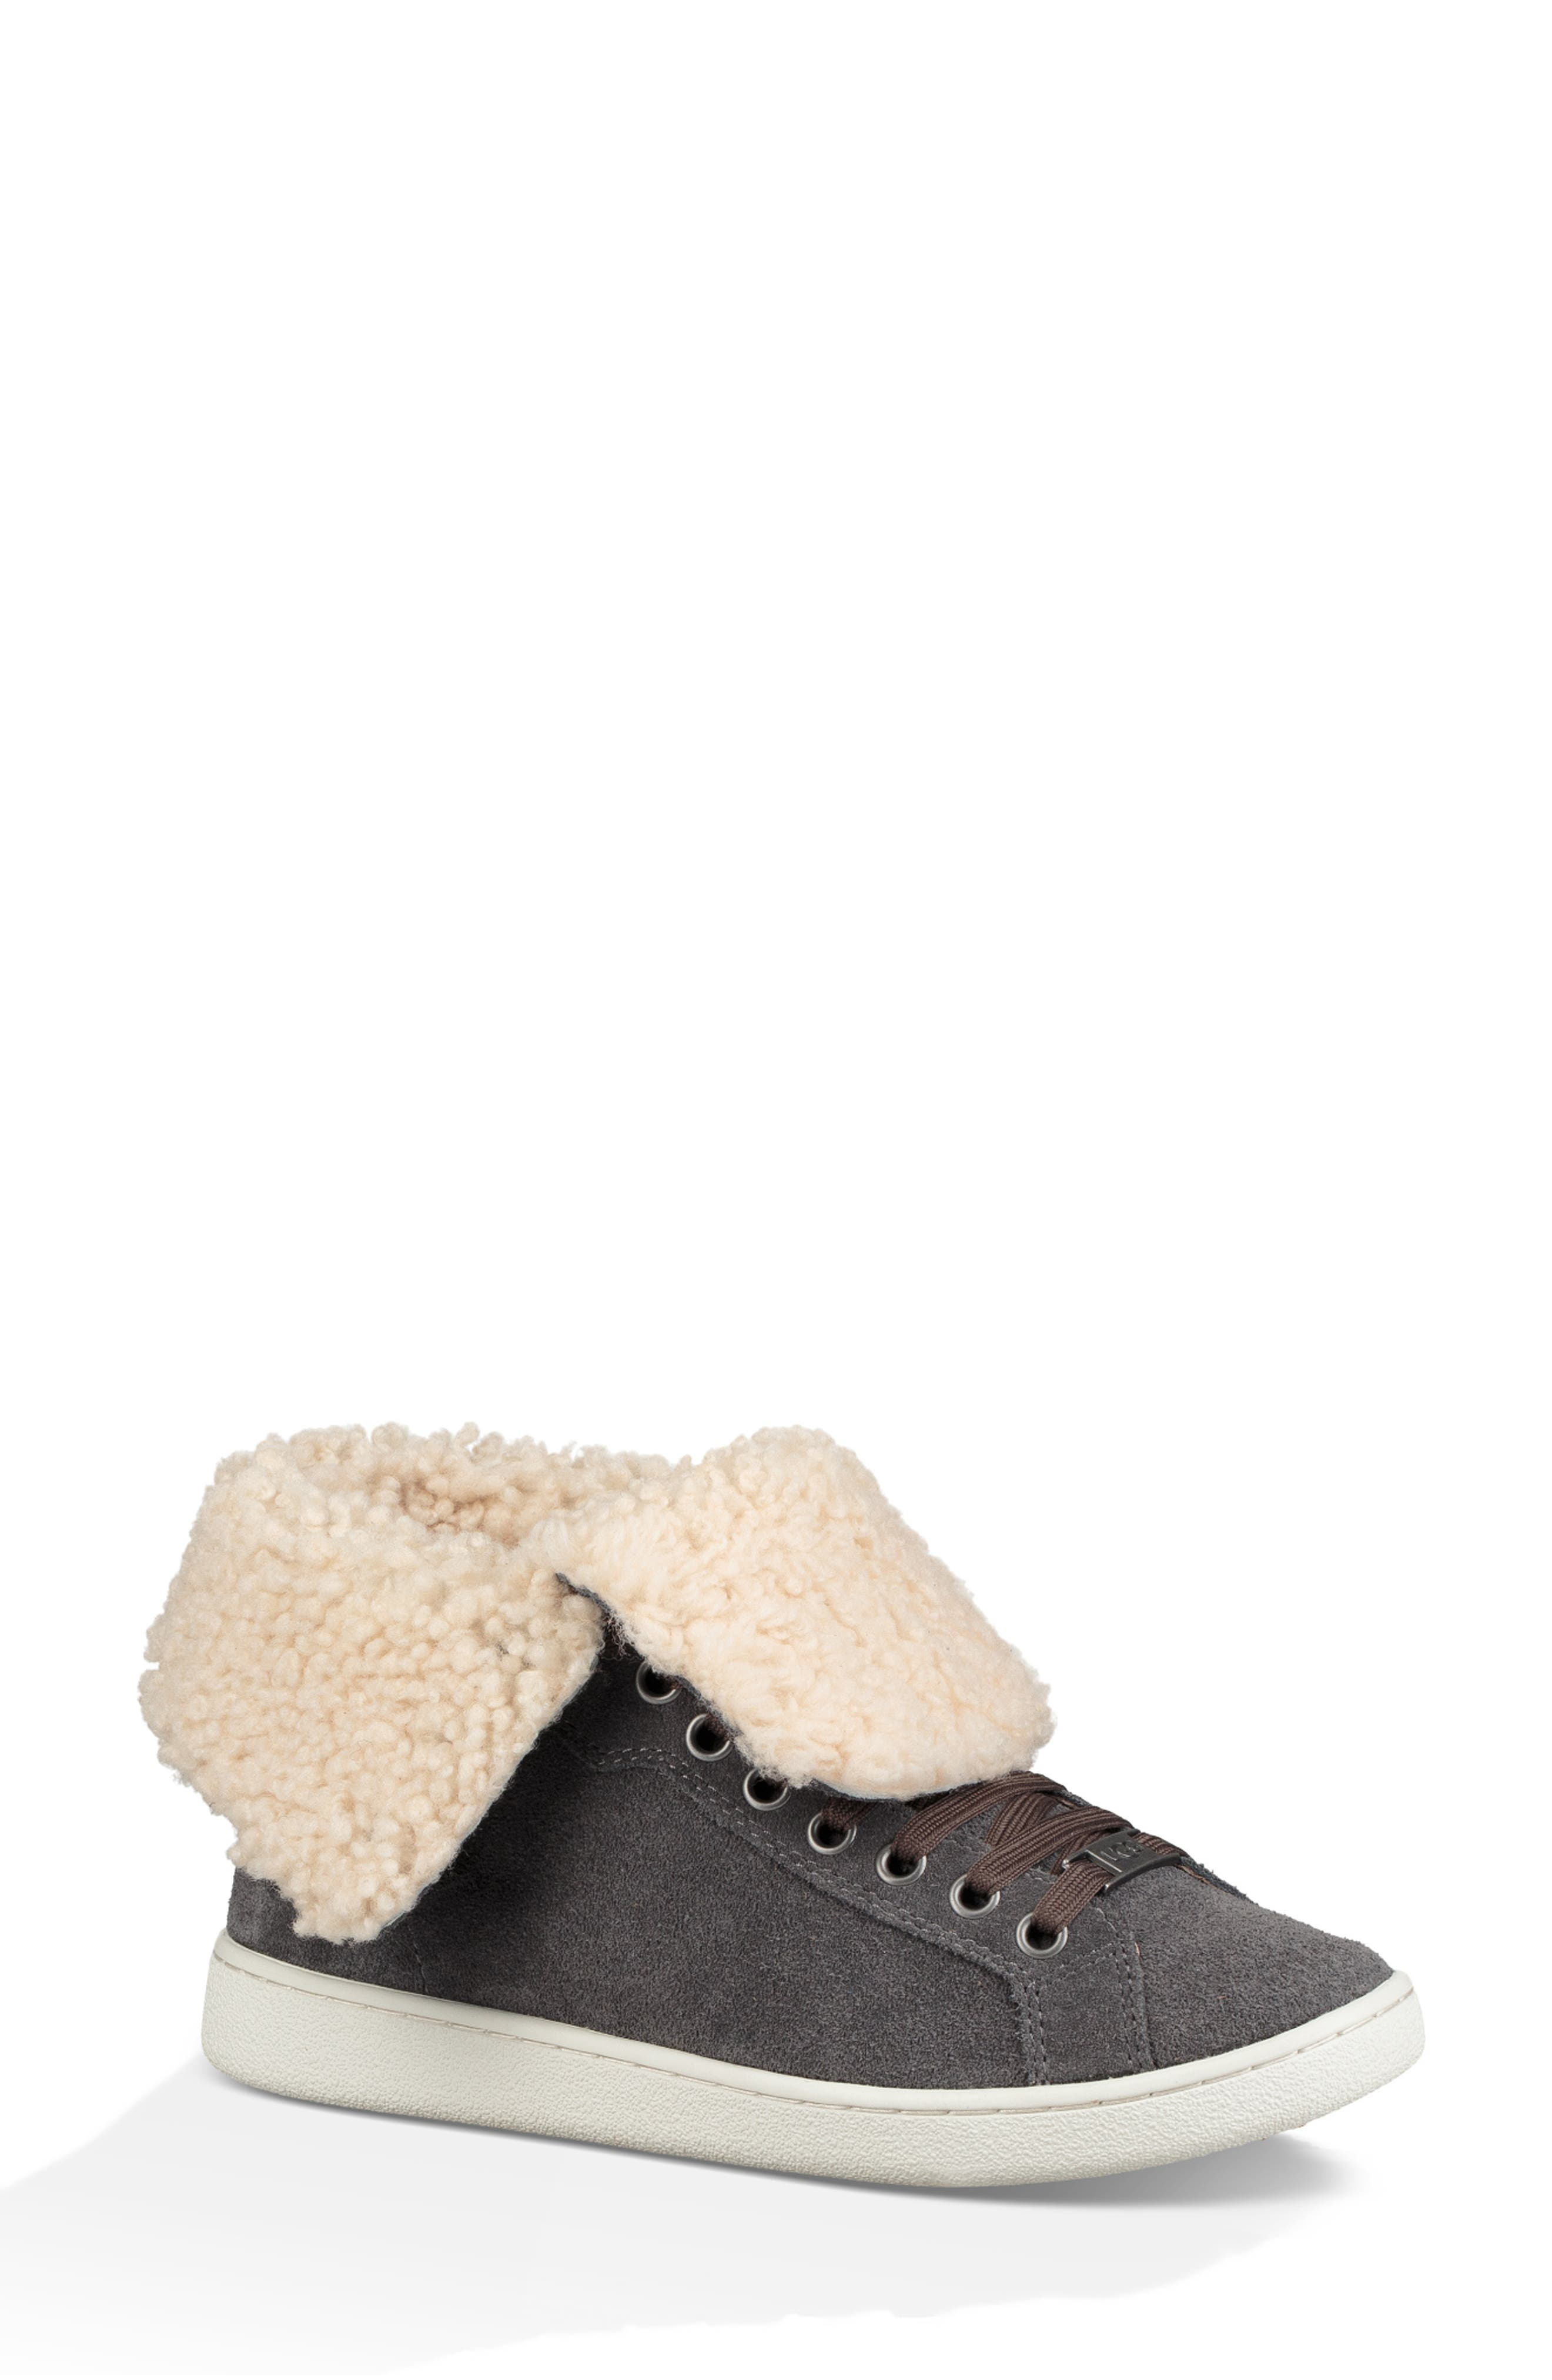 Starlyn Genuine Shearling Lined Boot,                             Alternate thumbnail 9, color,                             CHARCOAL